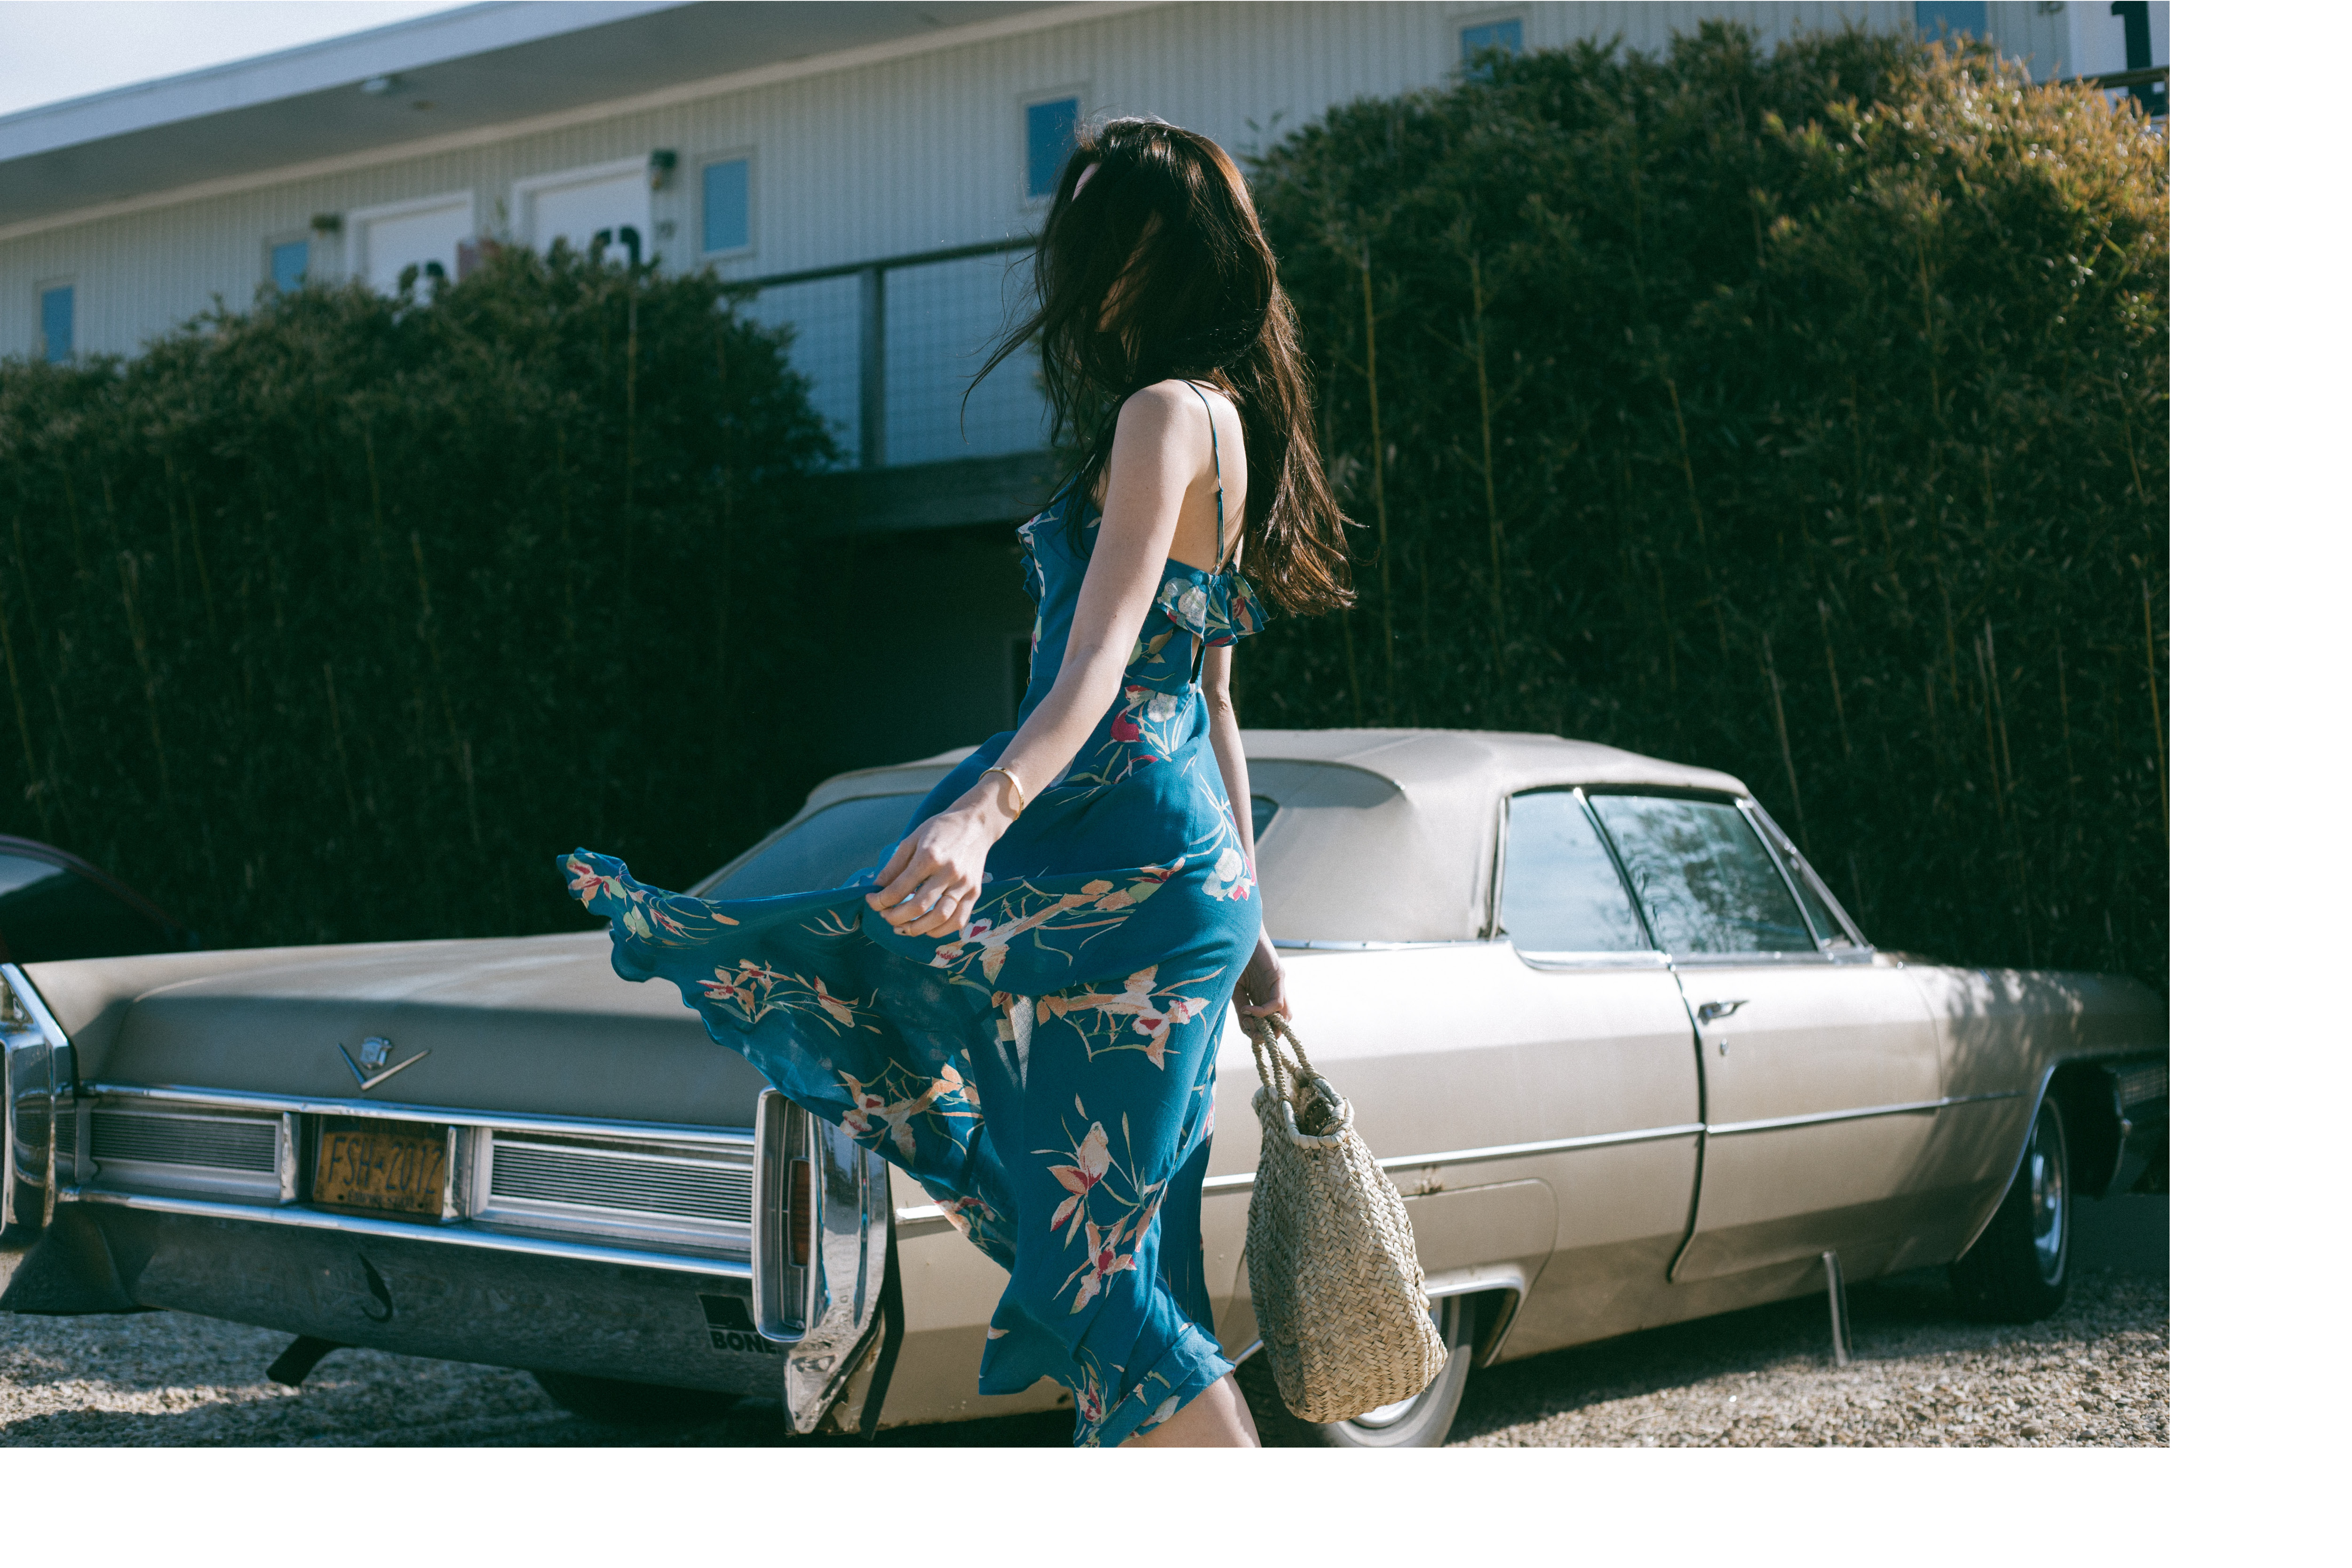 Ana Prodanovich's road trip to Montauk wearing Urban Outfitters.